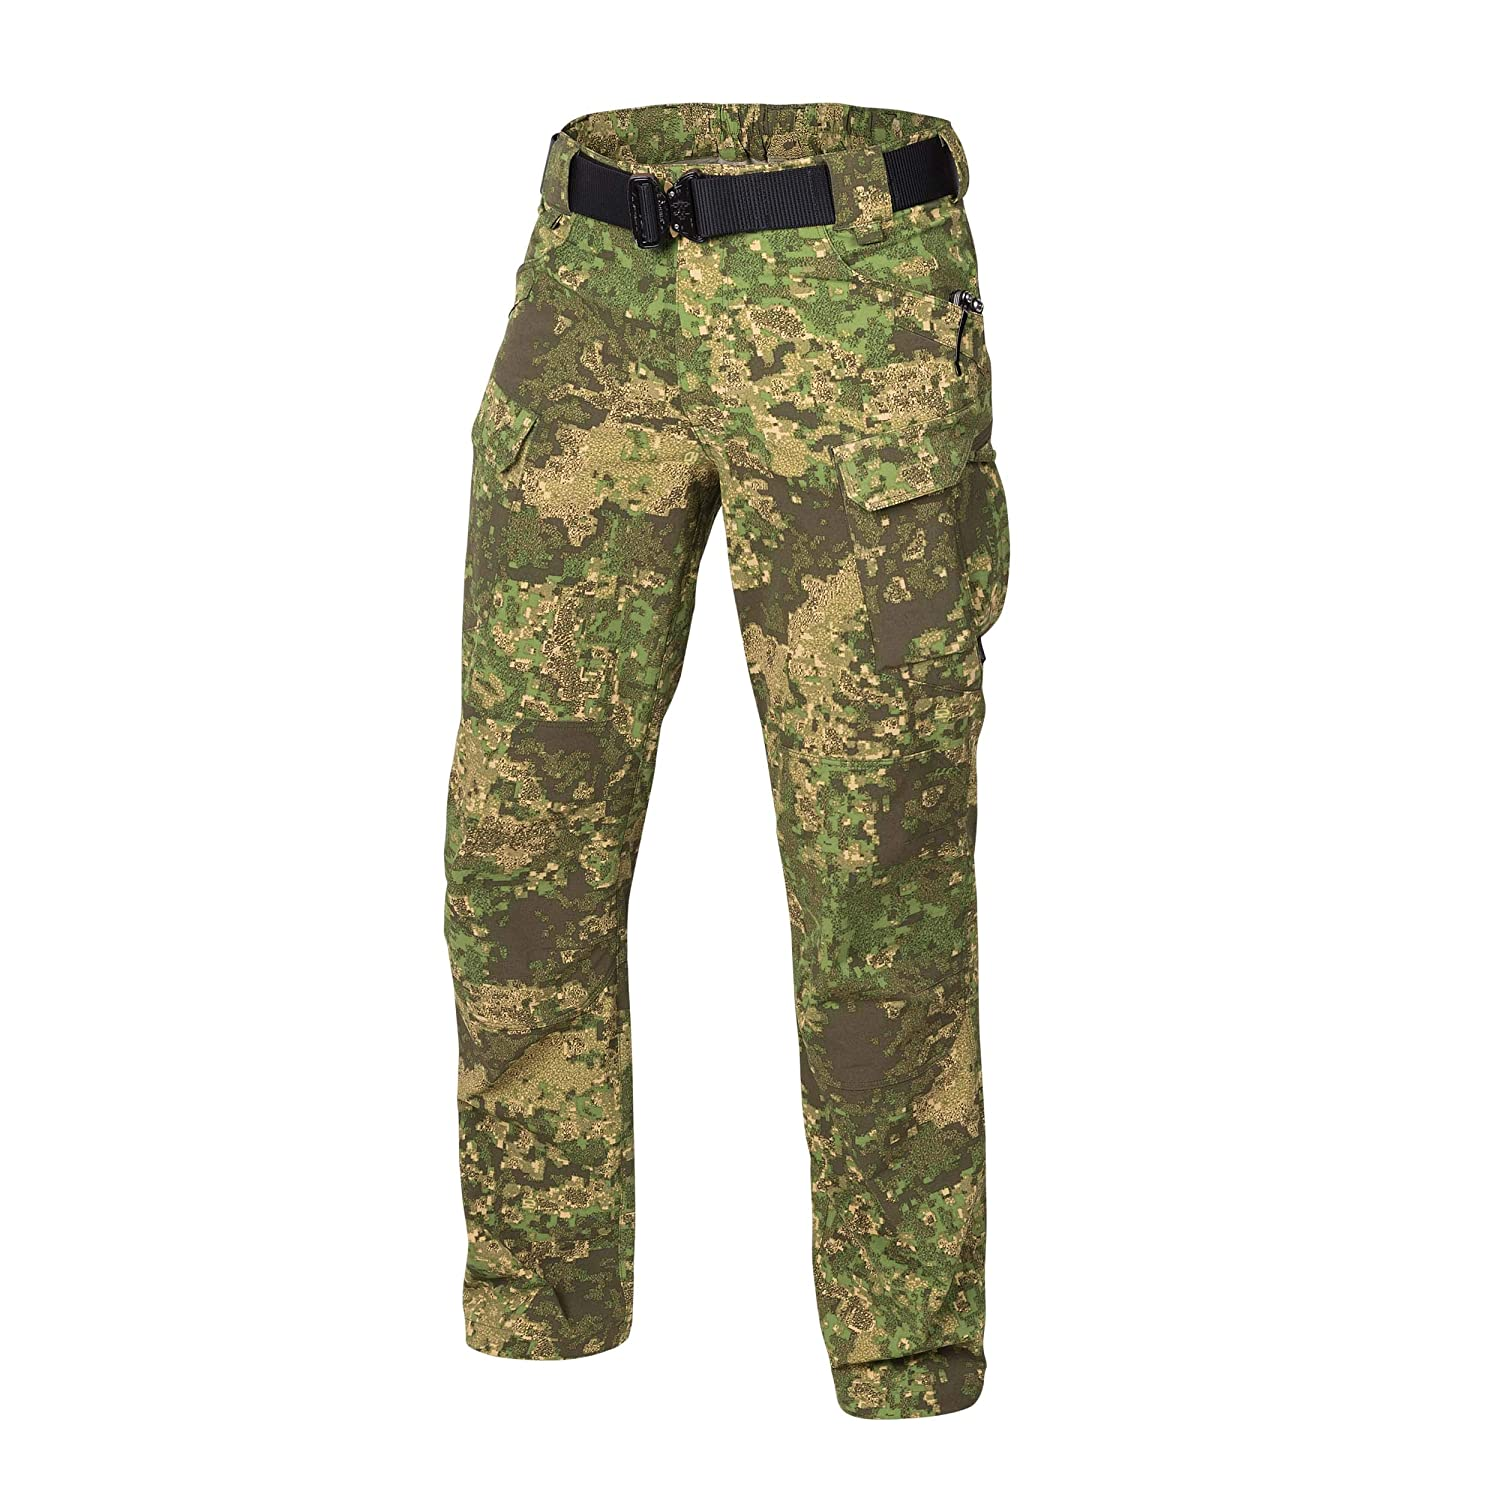 Helikon-Tex OTP Hose (Outdoor Tactical Pants) - VersaStretch - PenCott Wildwood